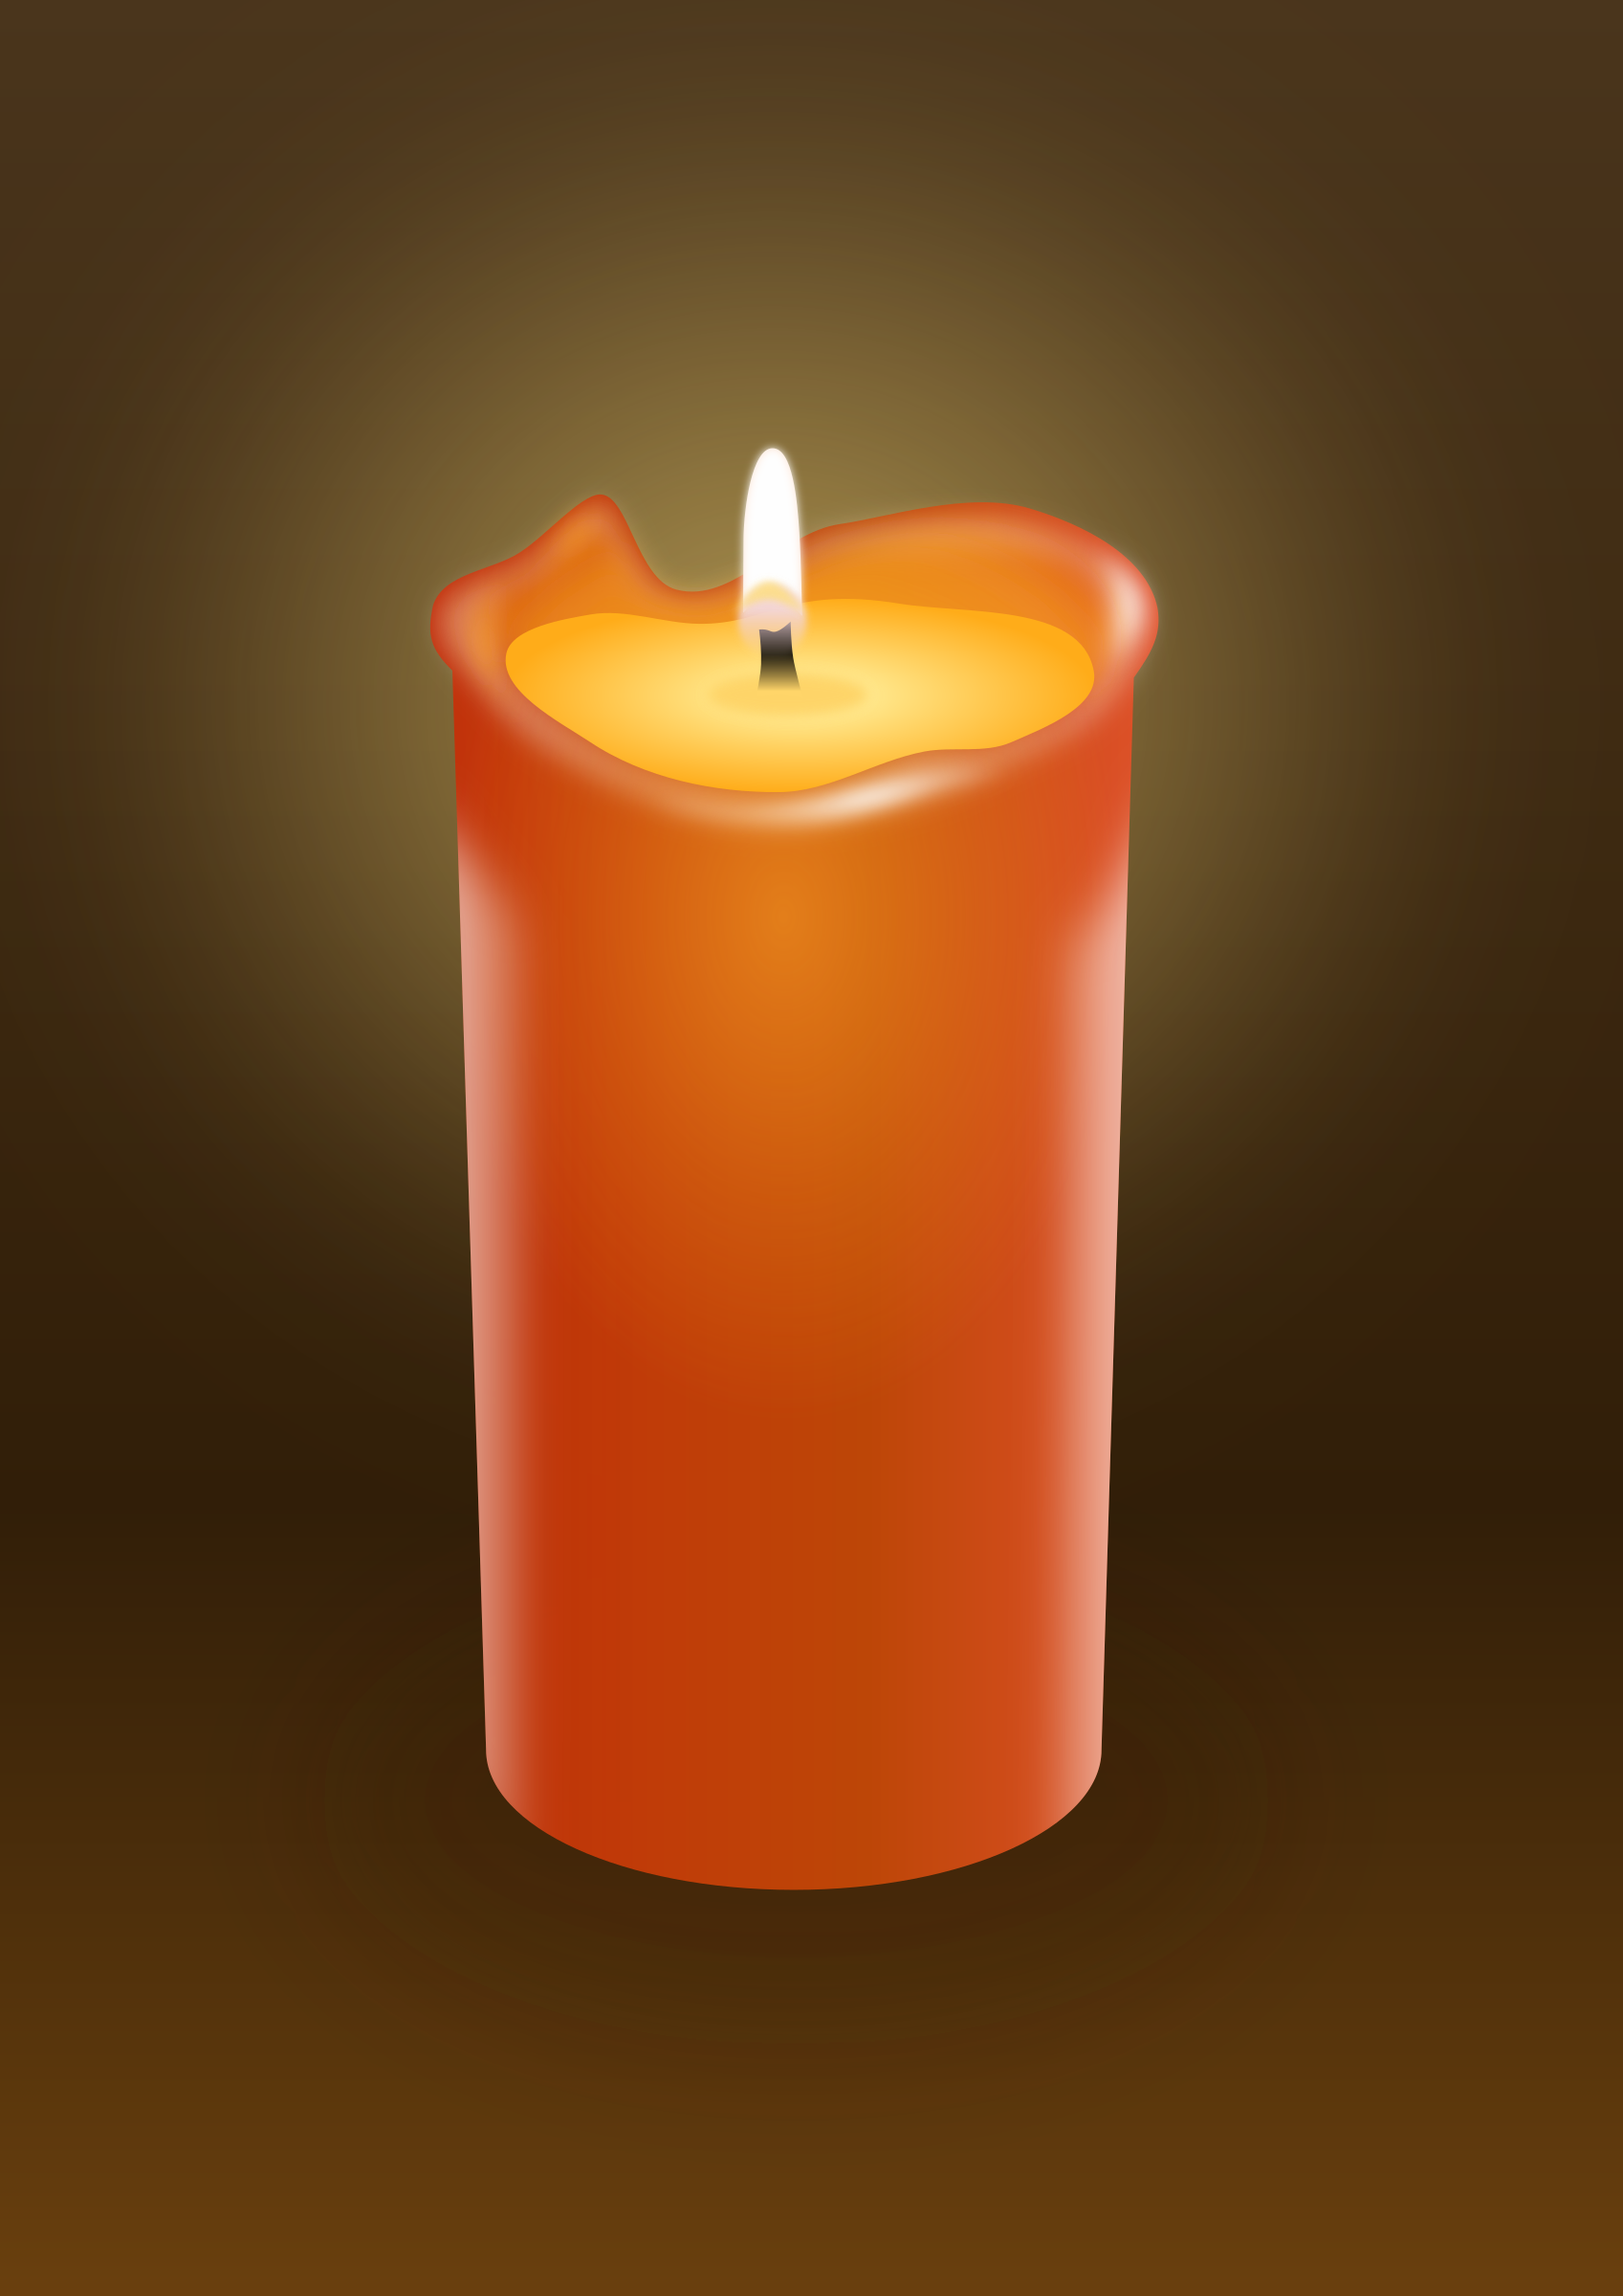 Candle by Tomas Sobek